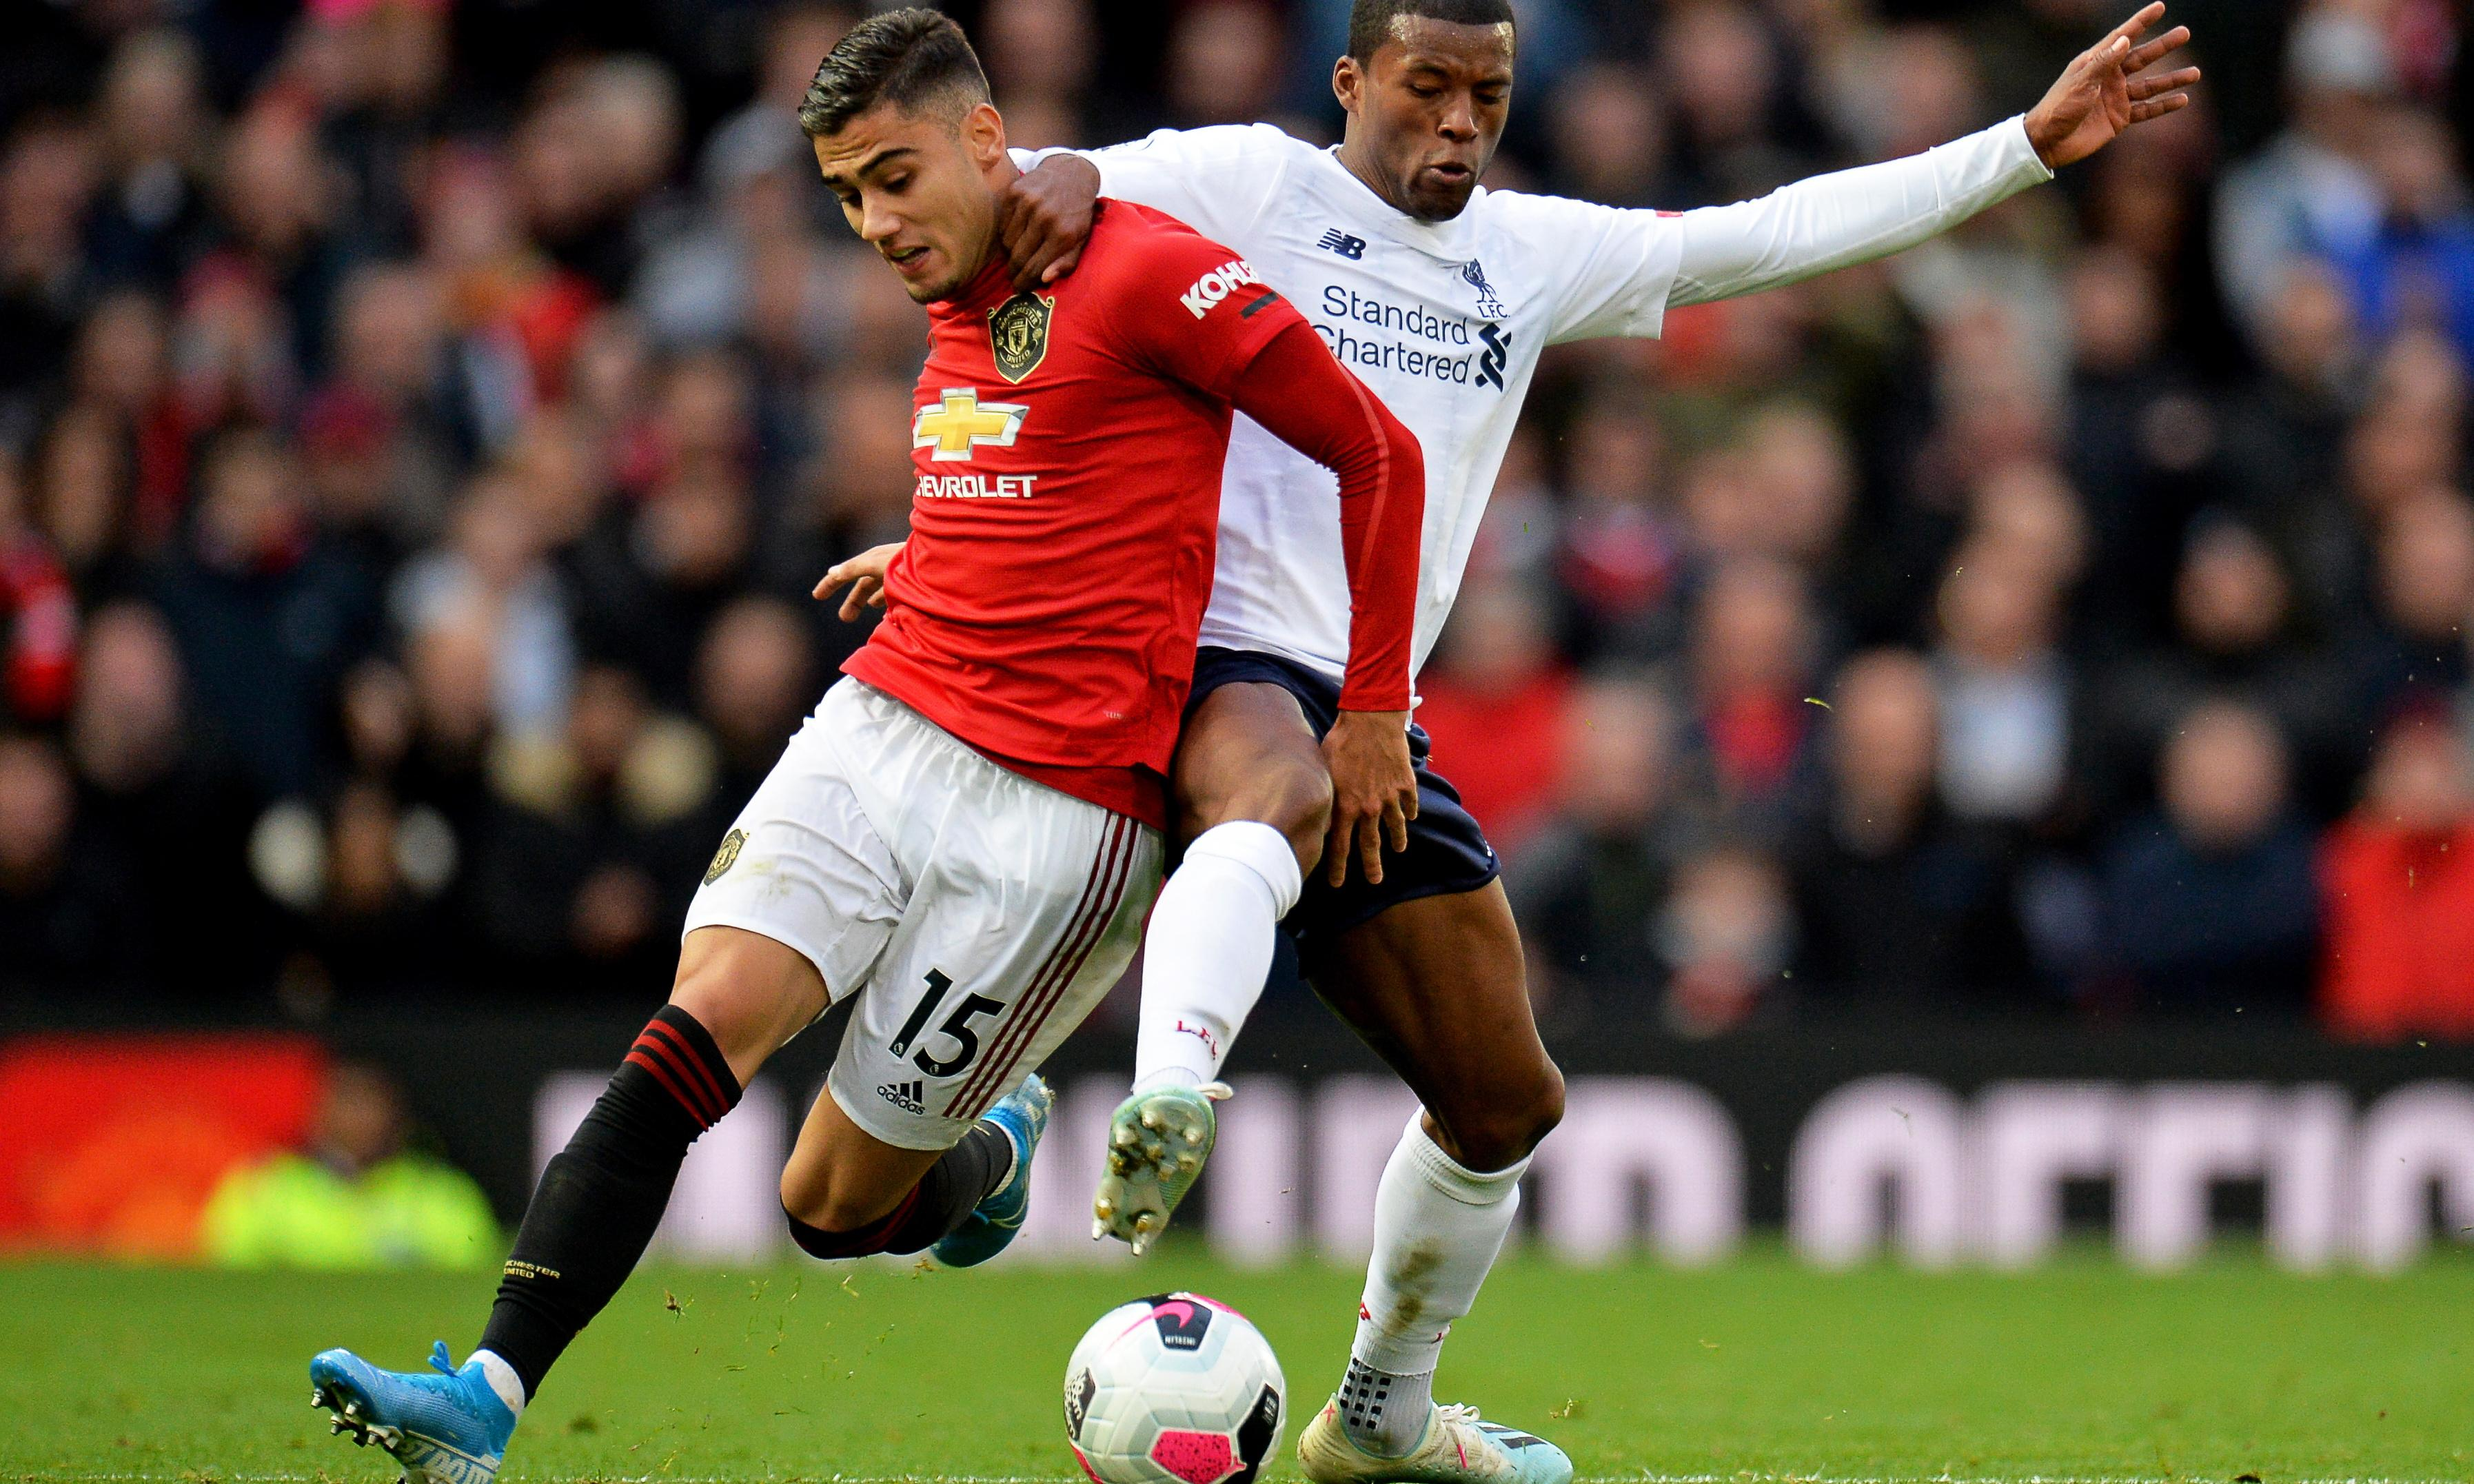 Andreas Pereira embodies Solskjær's brave tactics for muscular United